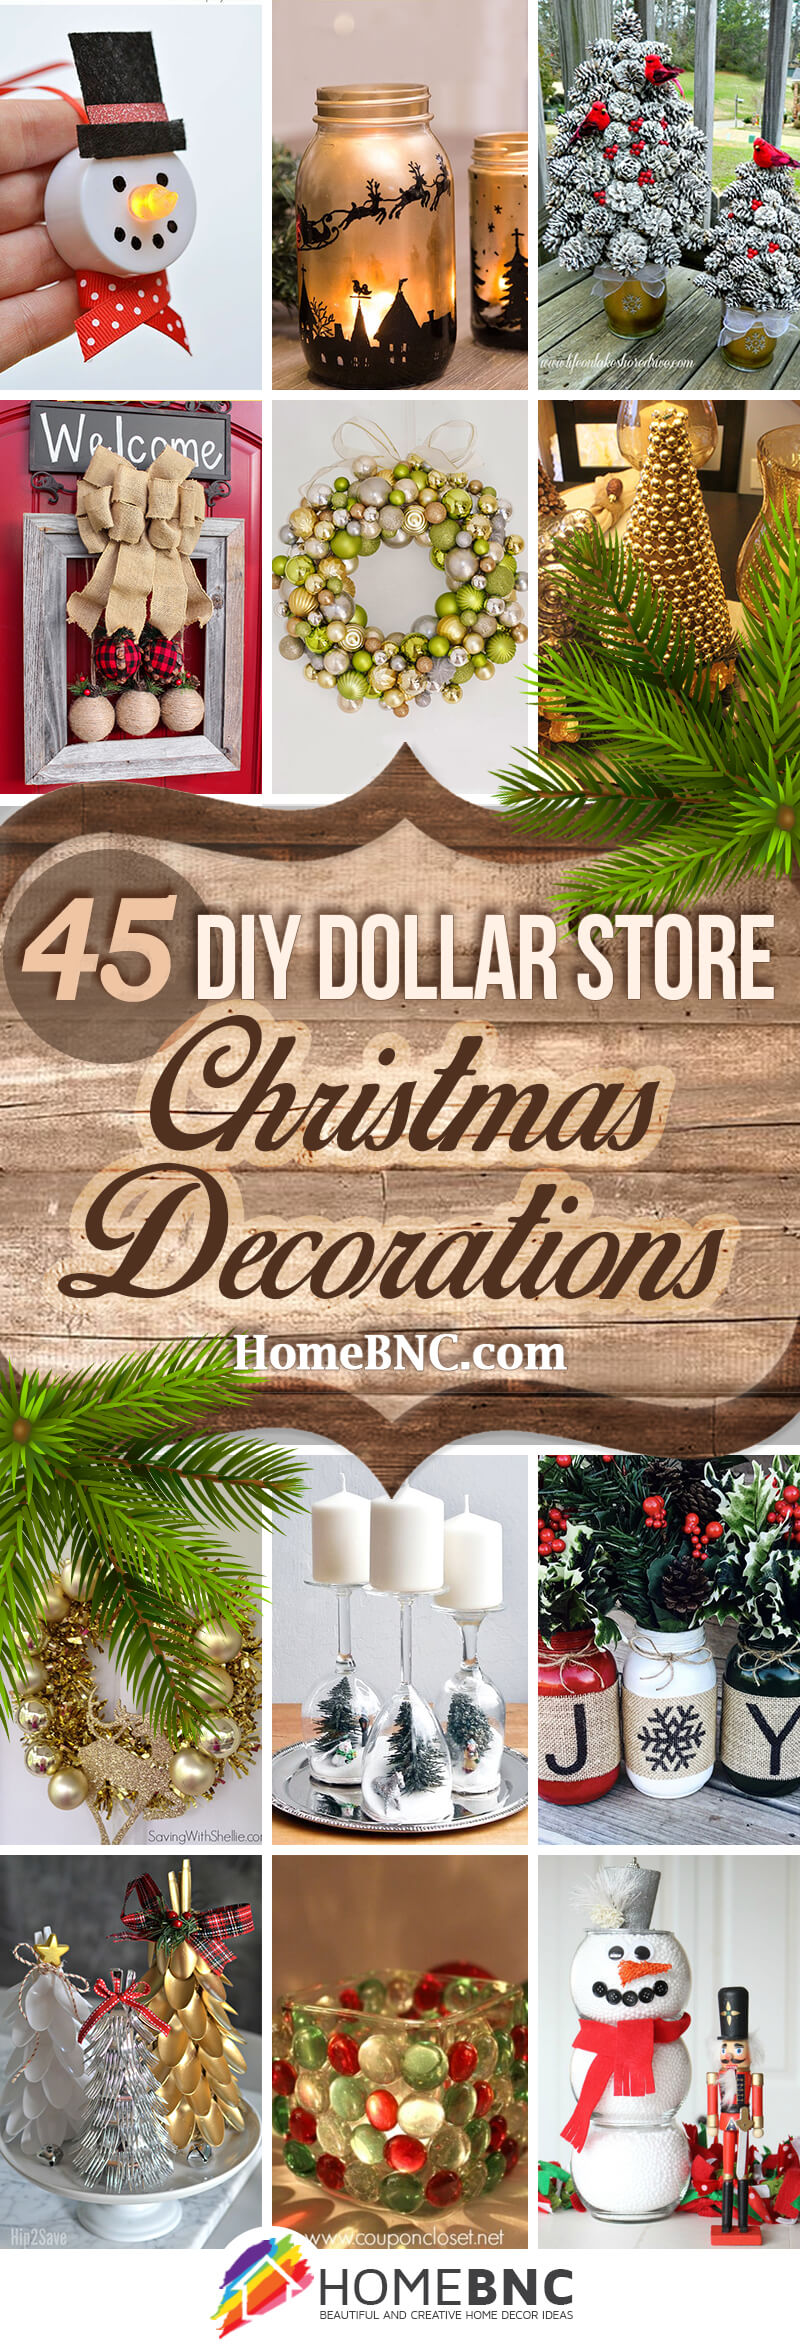 DIY Dollar Store Christmas Decorations